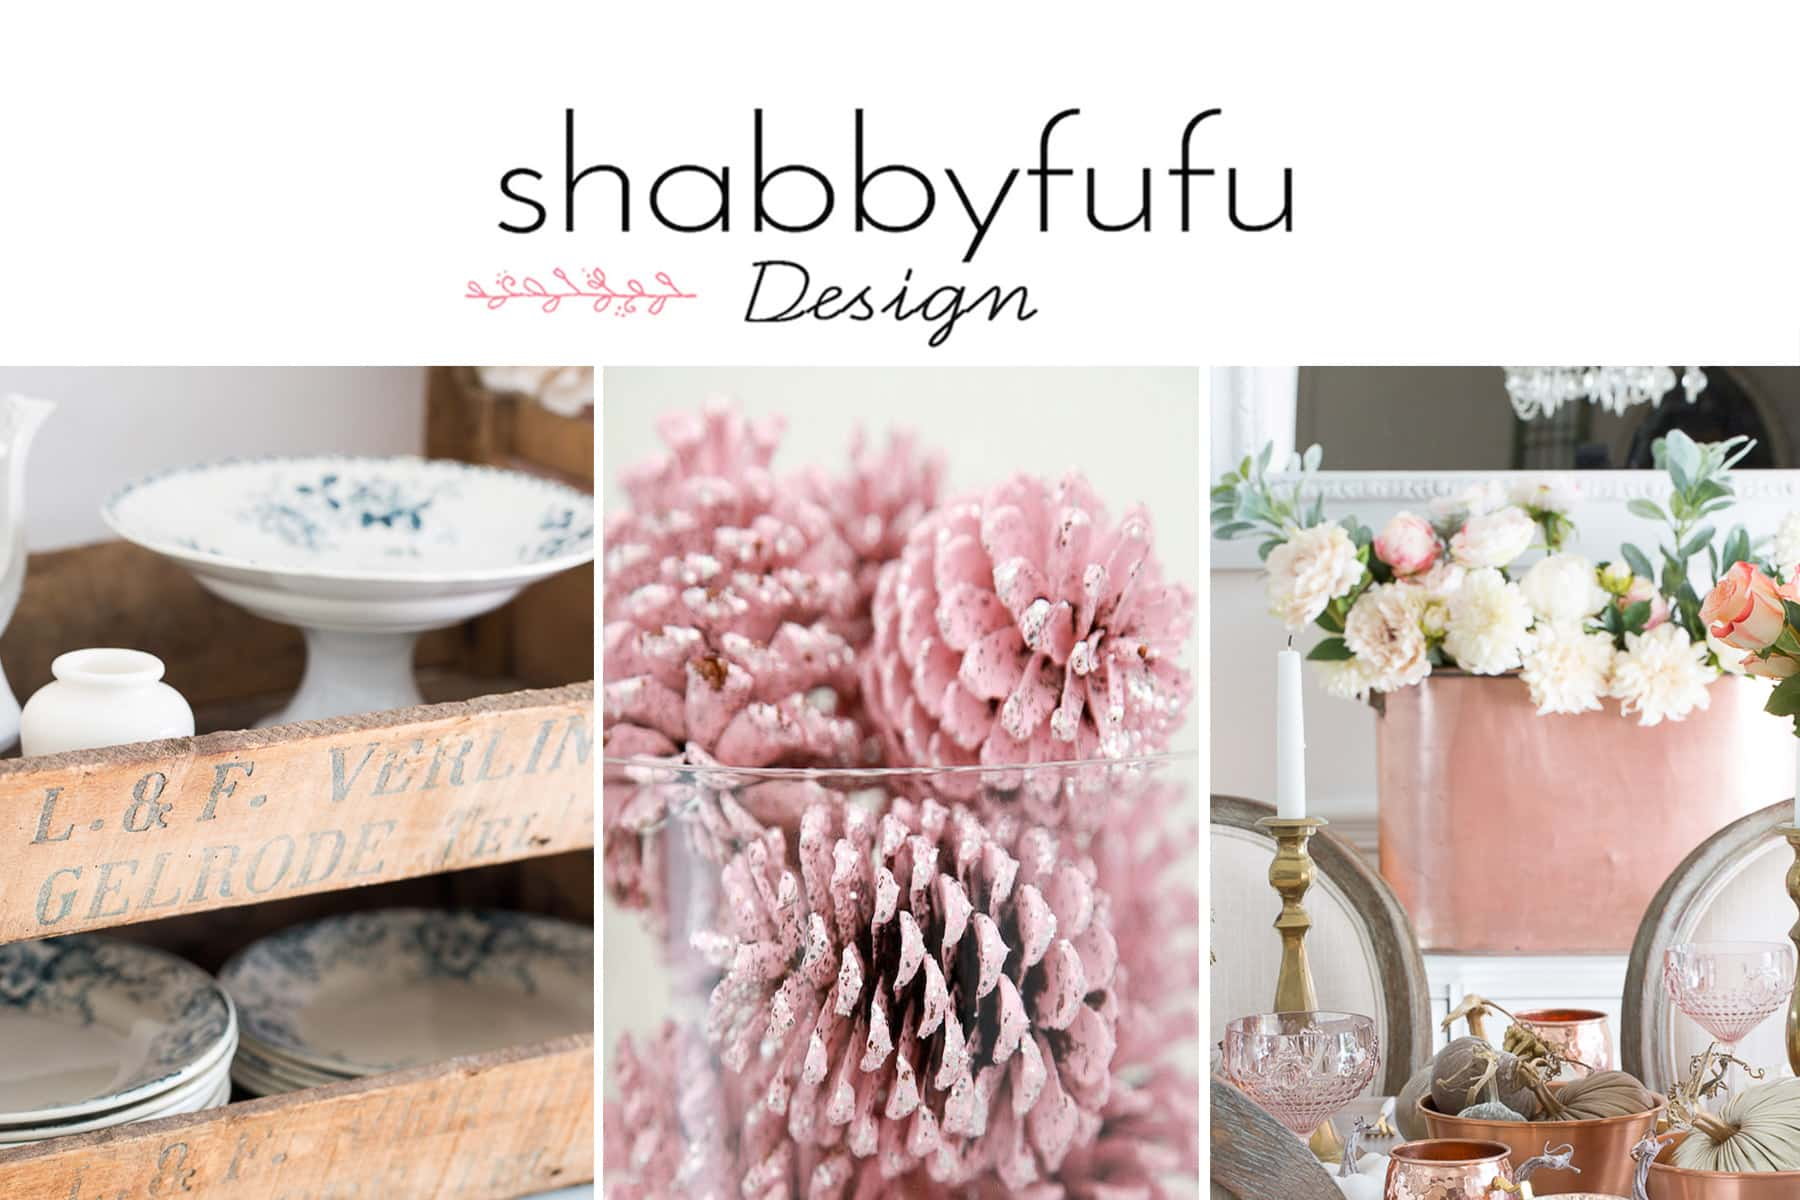 Shabbyfufu collage